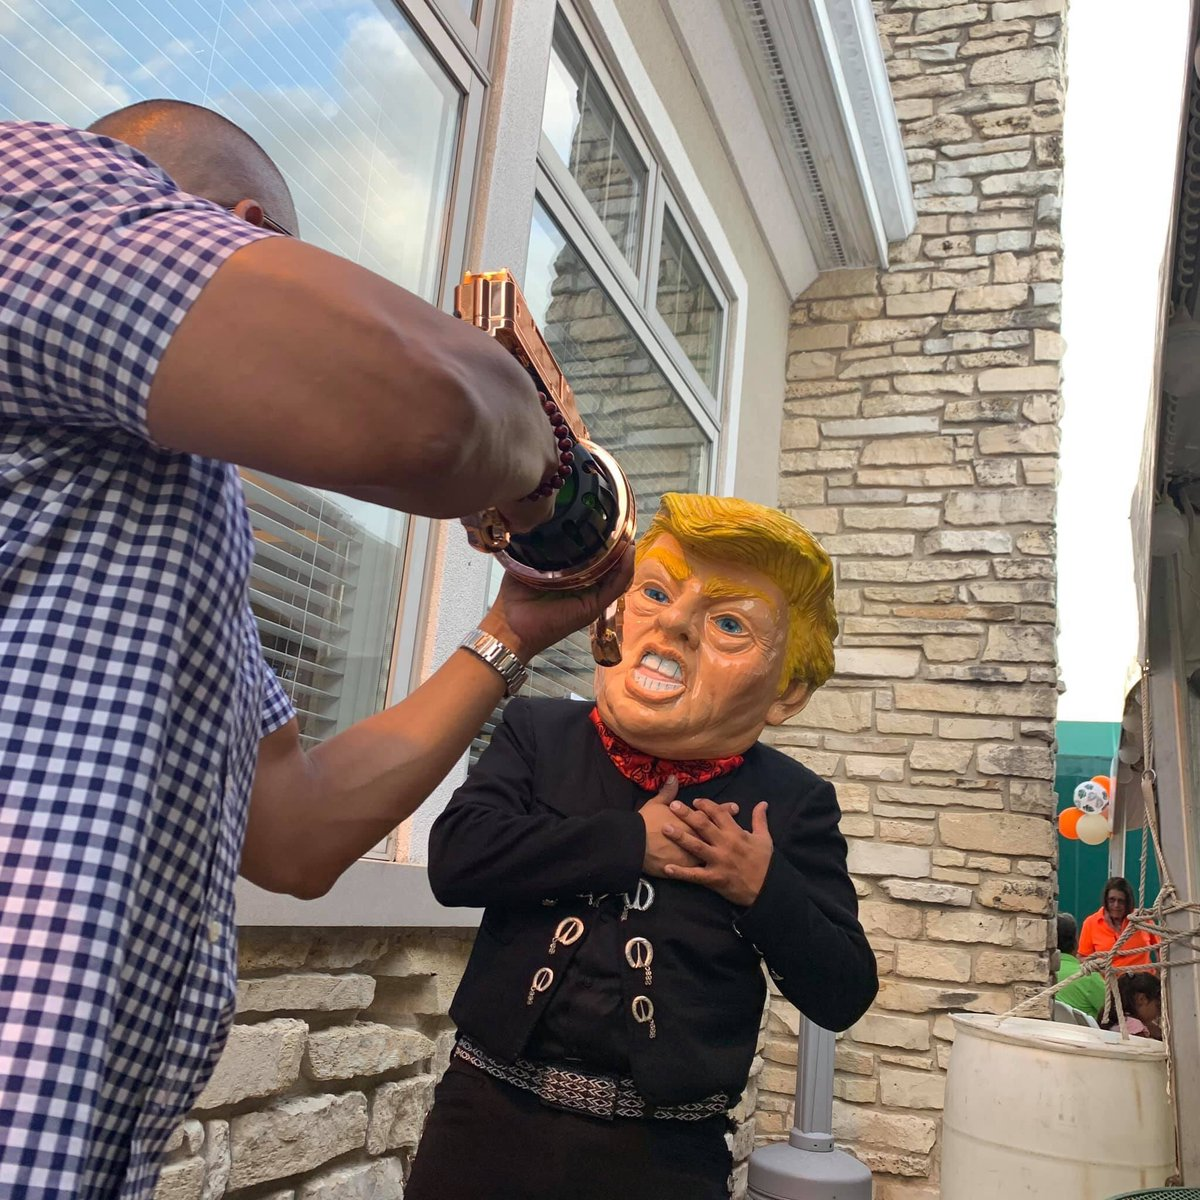 Shocking:  A Democrat State Senator's fundraiser featured photo opportunities to point a fake rifle at someone dressed as @realDonaldTrump  Every single Democrat running for president has been silent on this  Do they all condone this encouragement of political violence?  🤔 https://t.co/SBPVm86xPh